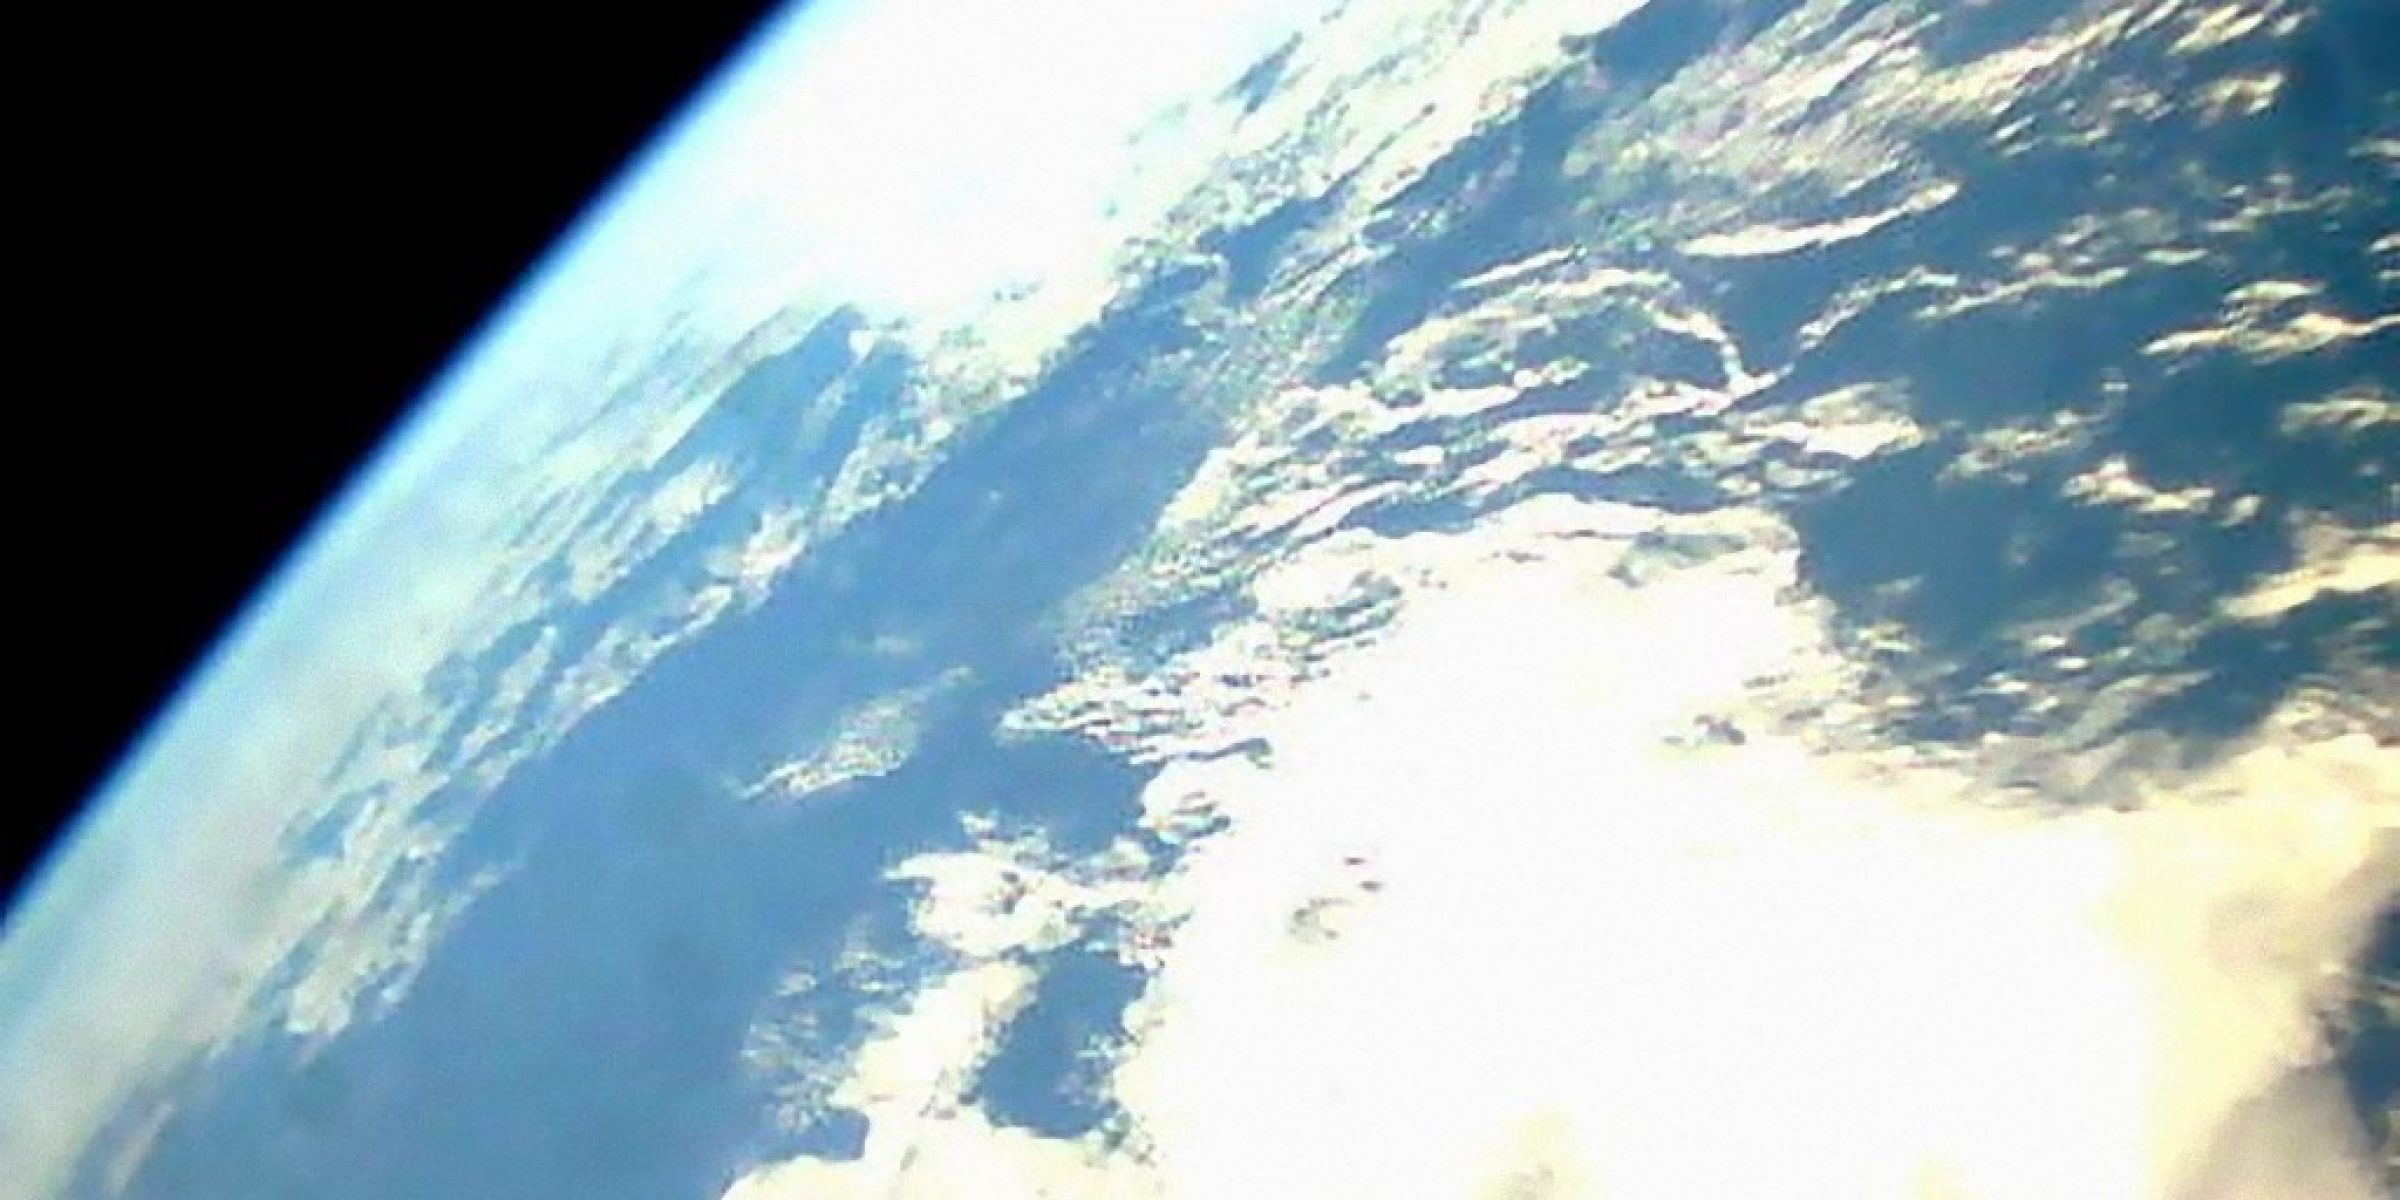 Ten Years of Using SPARK to Build CubeSat Nano Satellites With